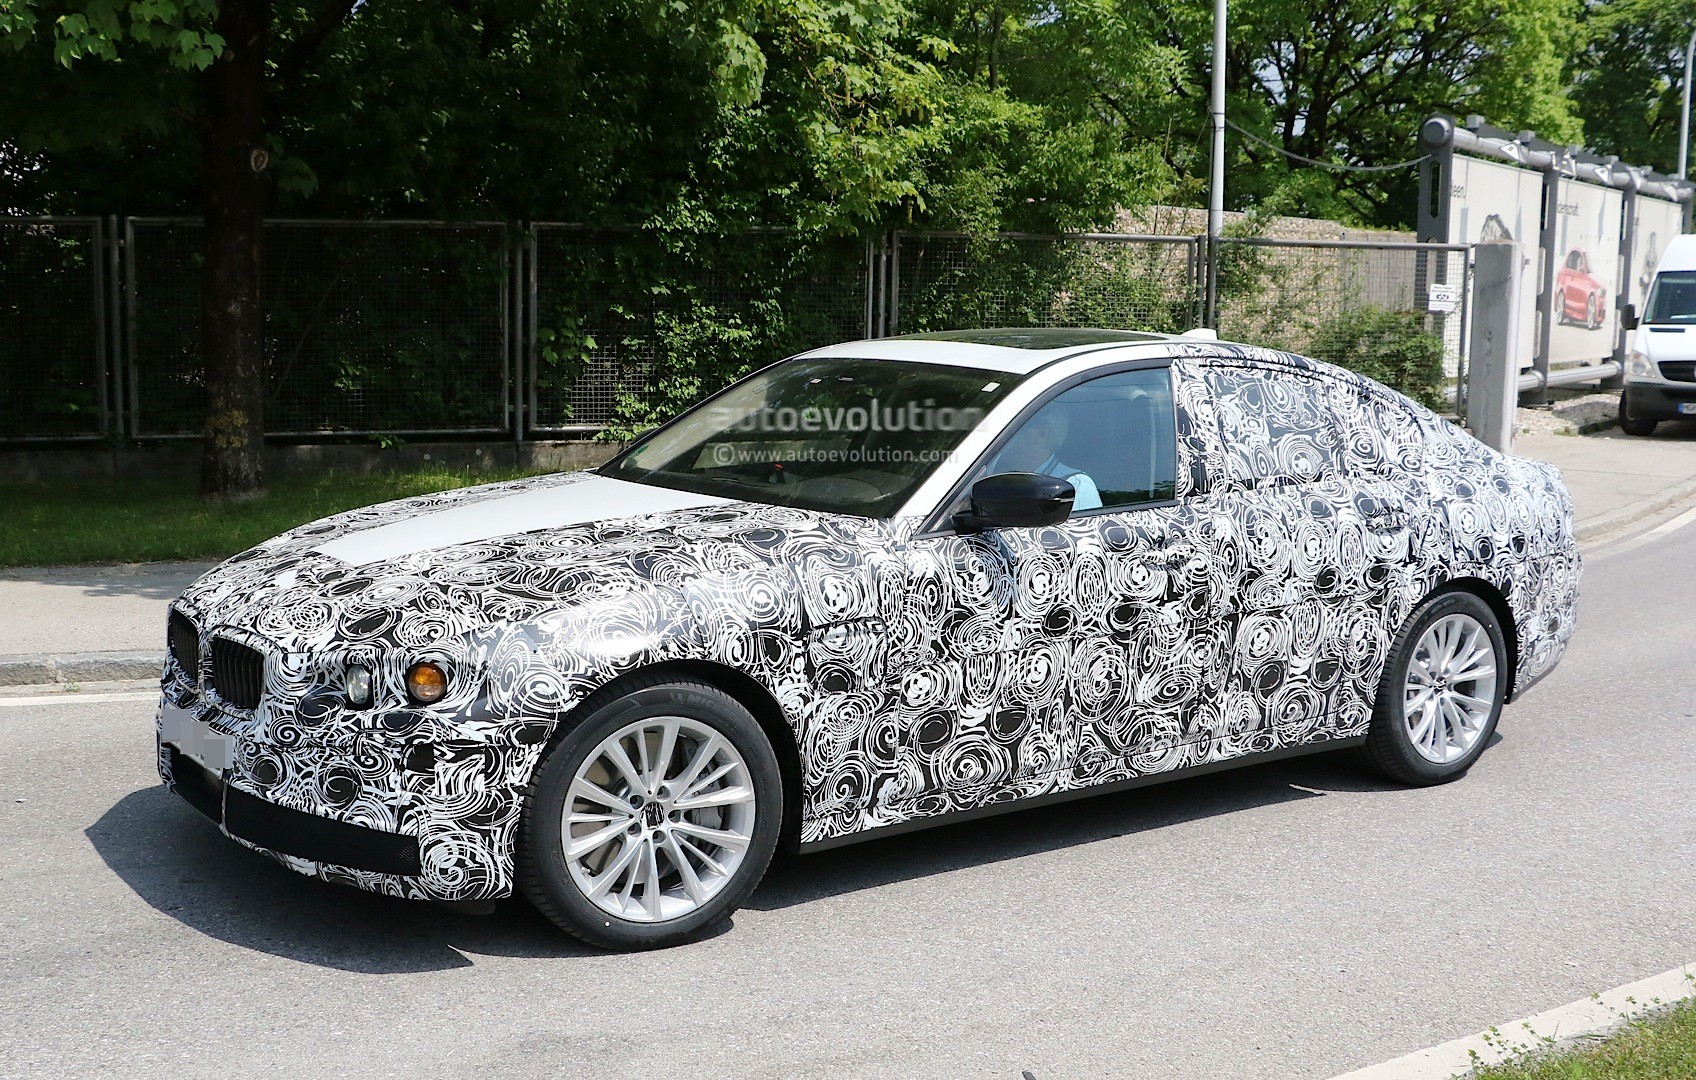 Spyshots All New Bmw M5 G80 Test Mule Or 5 Series M